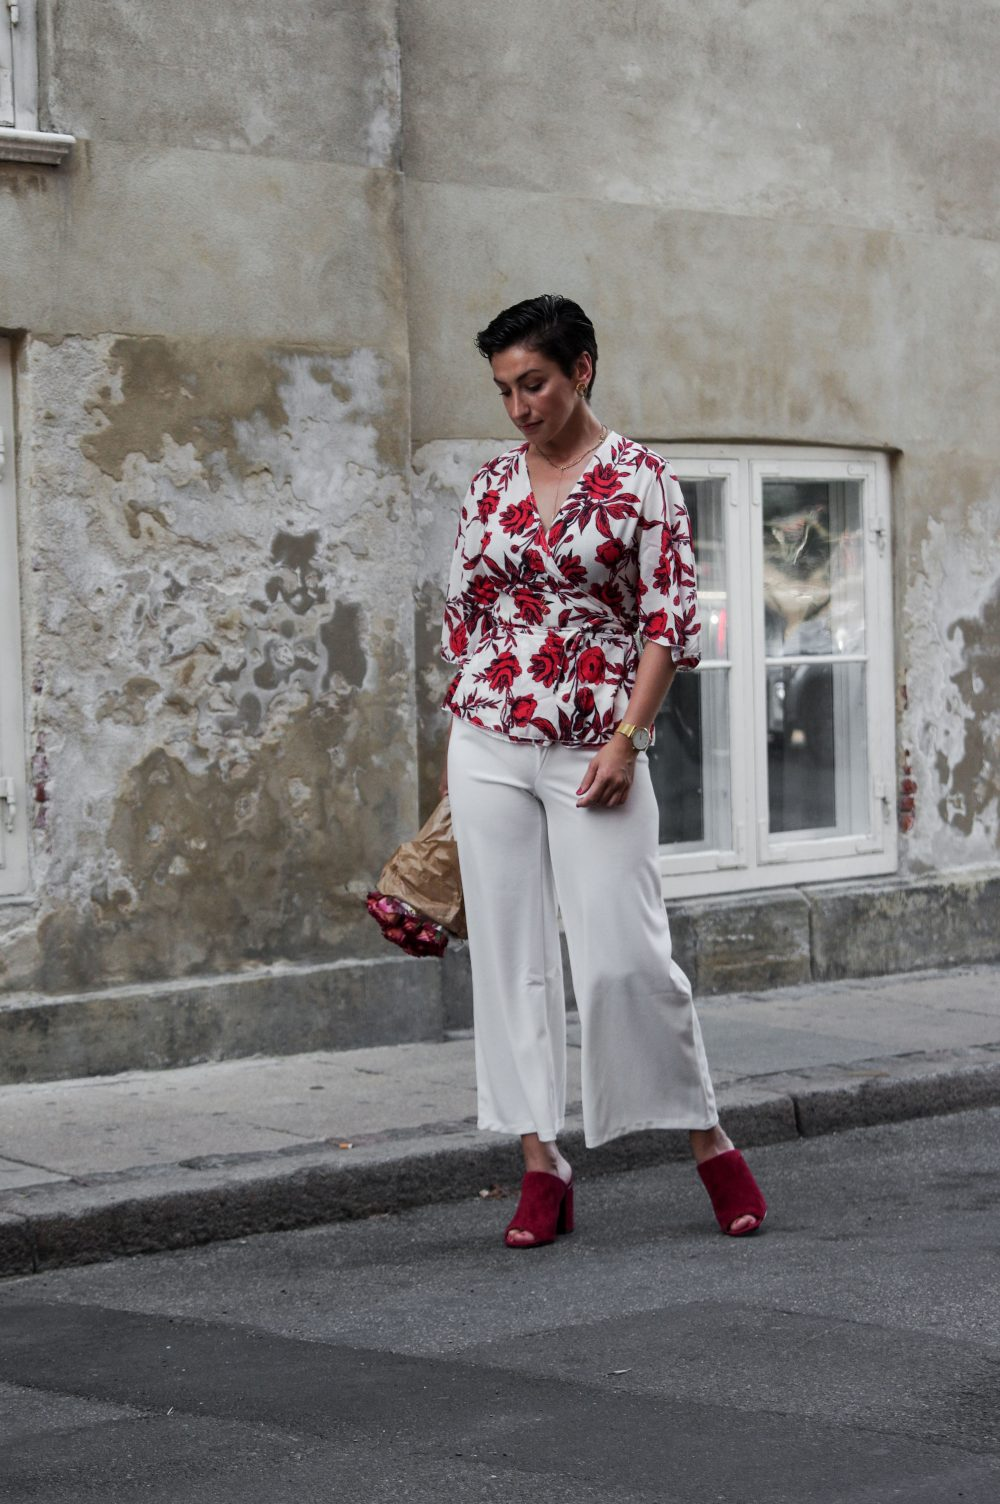 floral summer shirt blouse, Summer Stylish outfit, outfit idea for summer, boohoo shirt, work wear shirt,summer shirts and blouses for work and casual, summer fashion, summer style 2018, summer outfits, work wear summer outfits, mihabalan.com